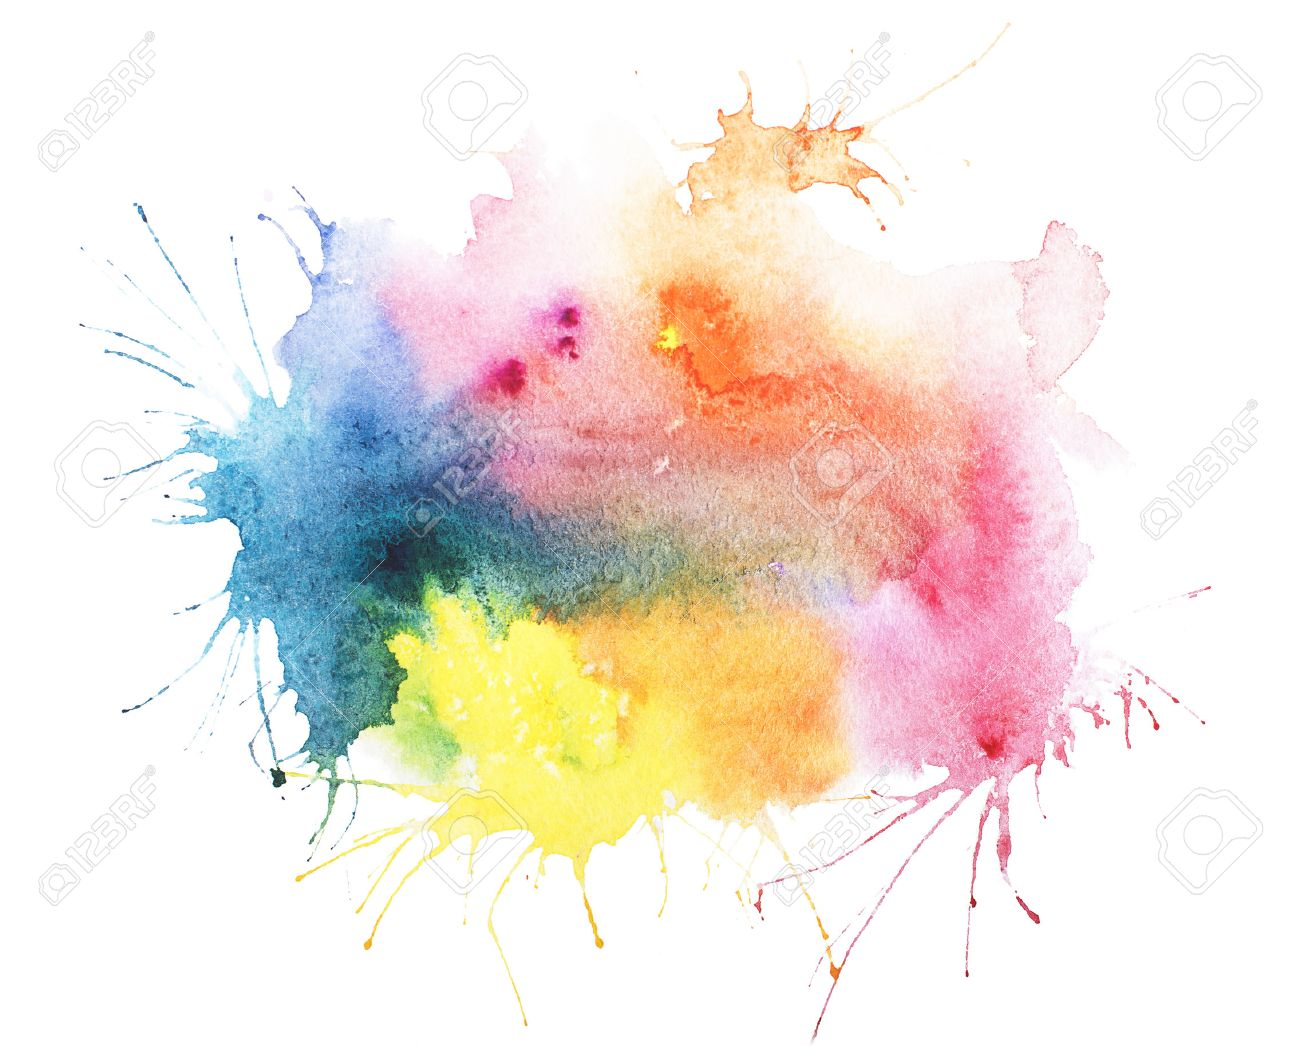 Watercolor Paint Splatter